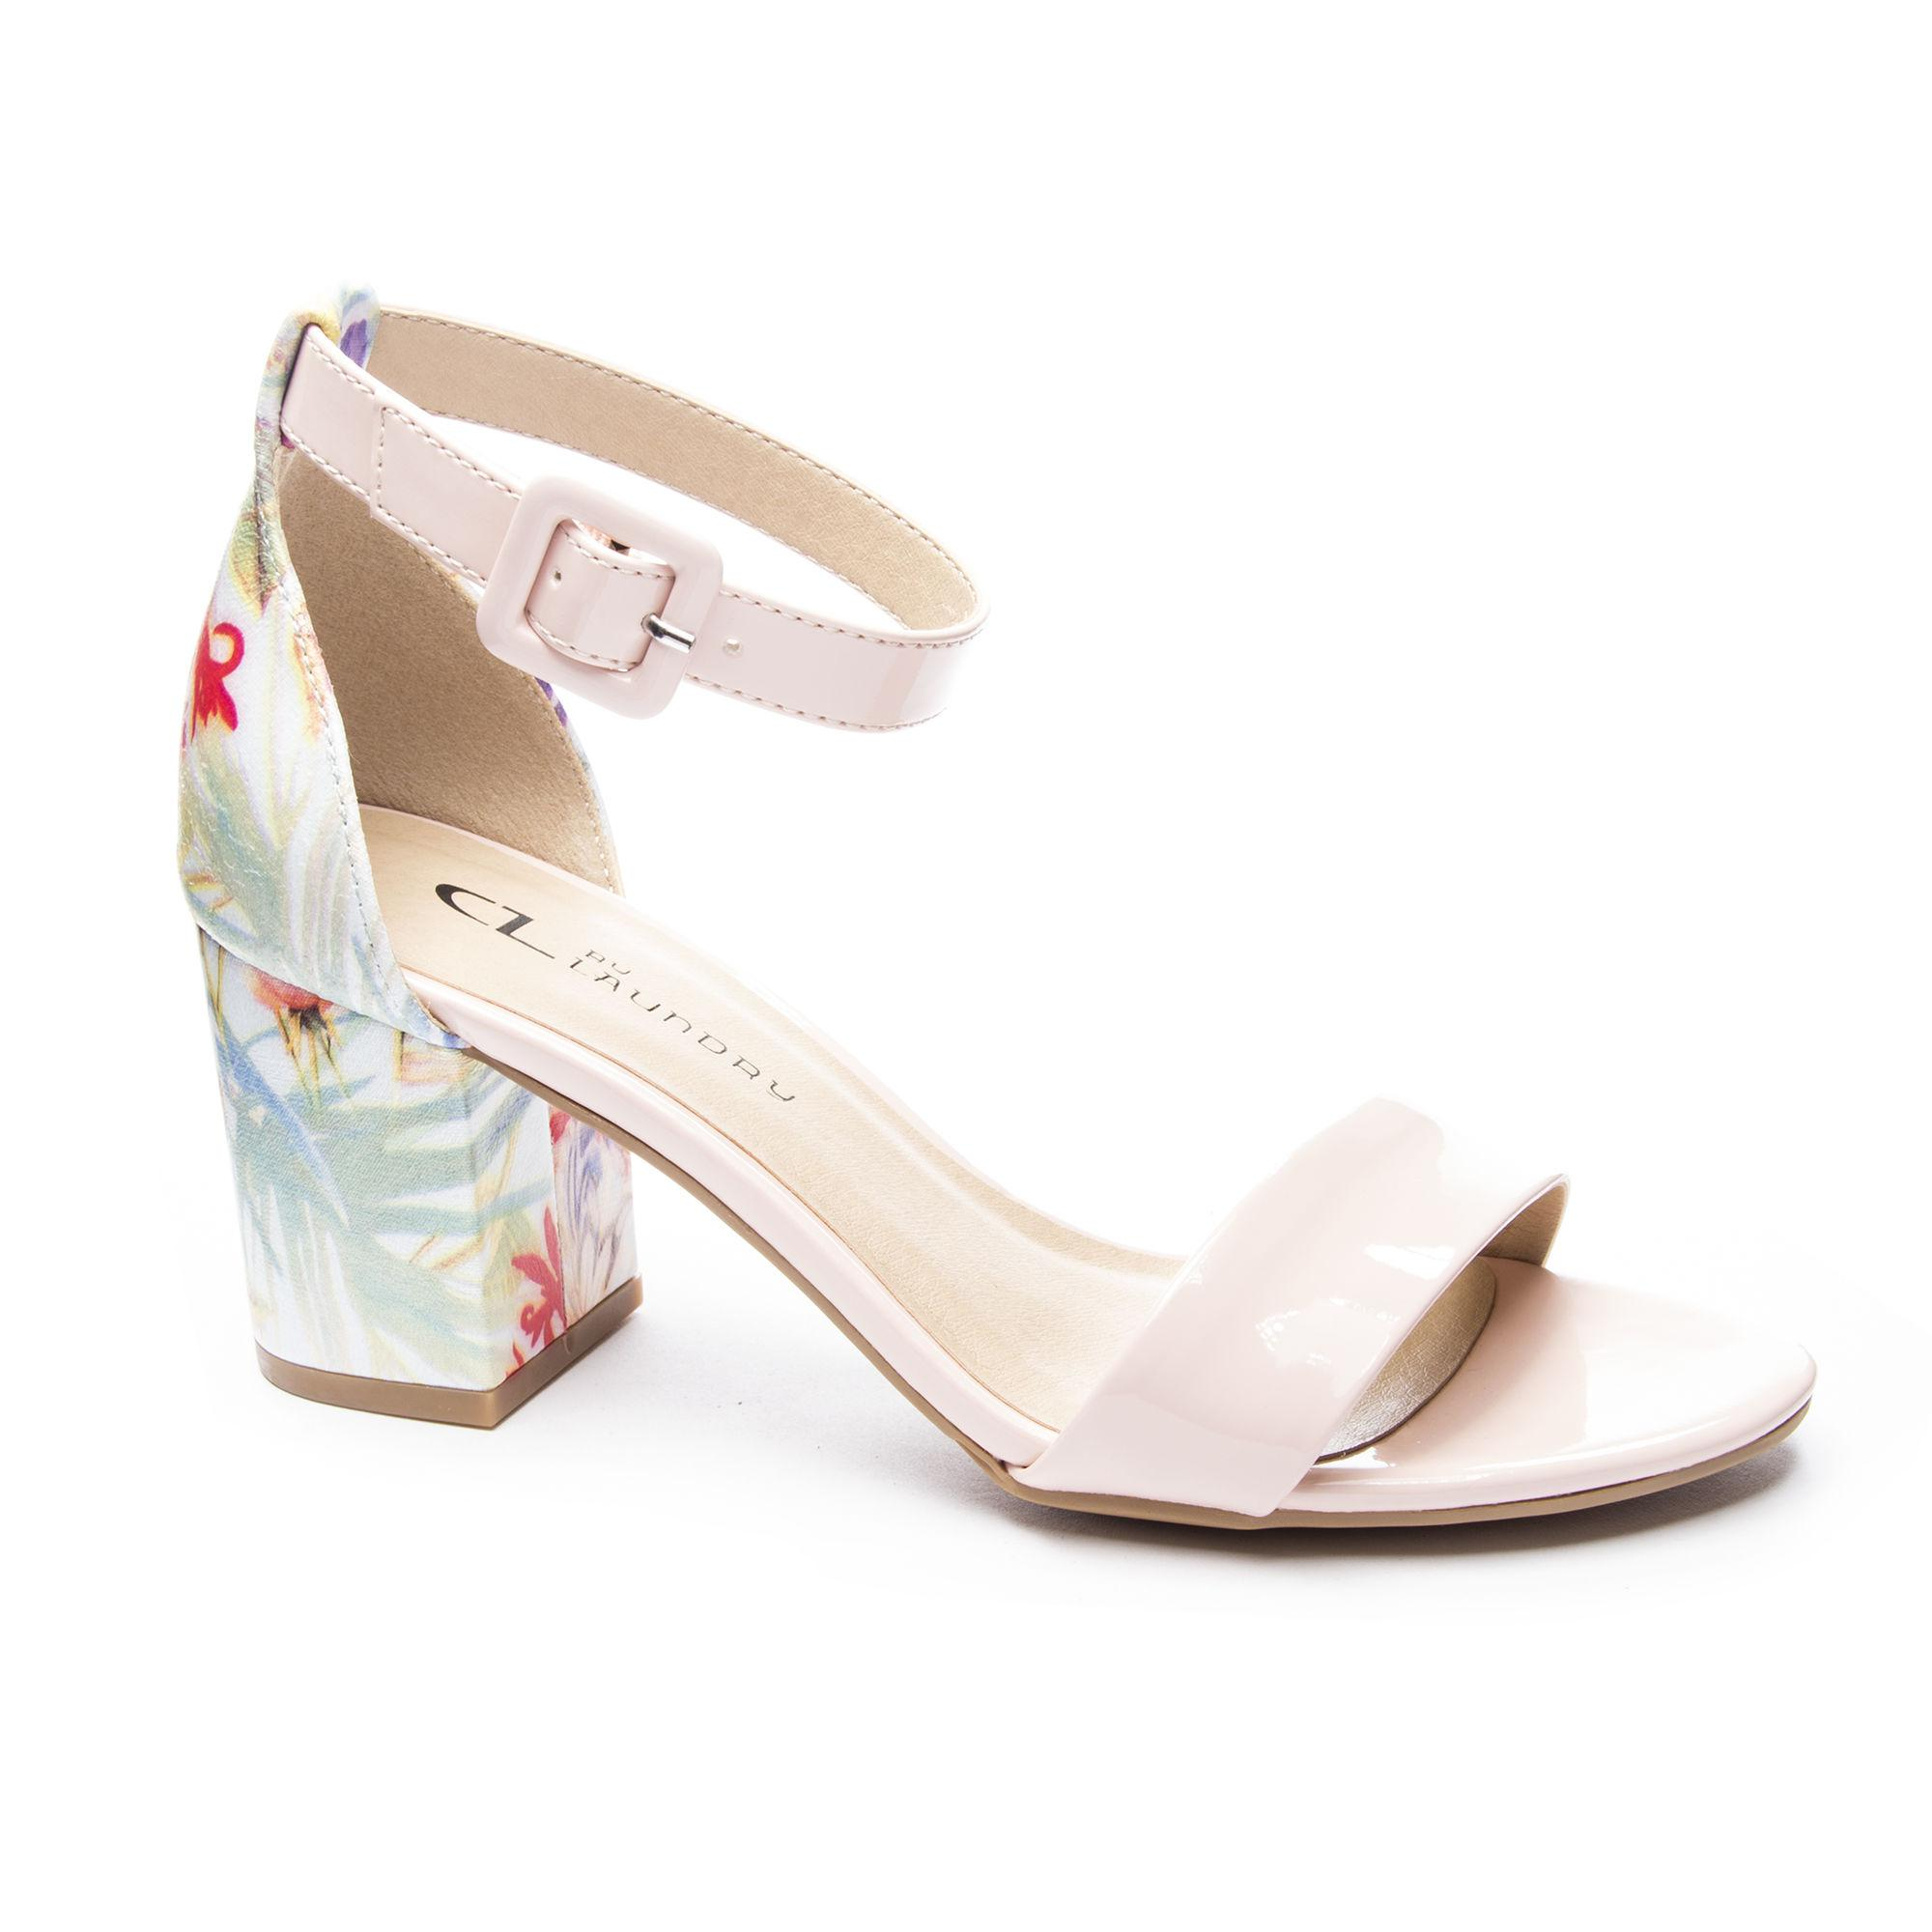 406437318a8 Lyst - Chinese Laundry Jody Block Heel Sandal in Pink